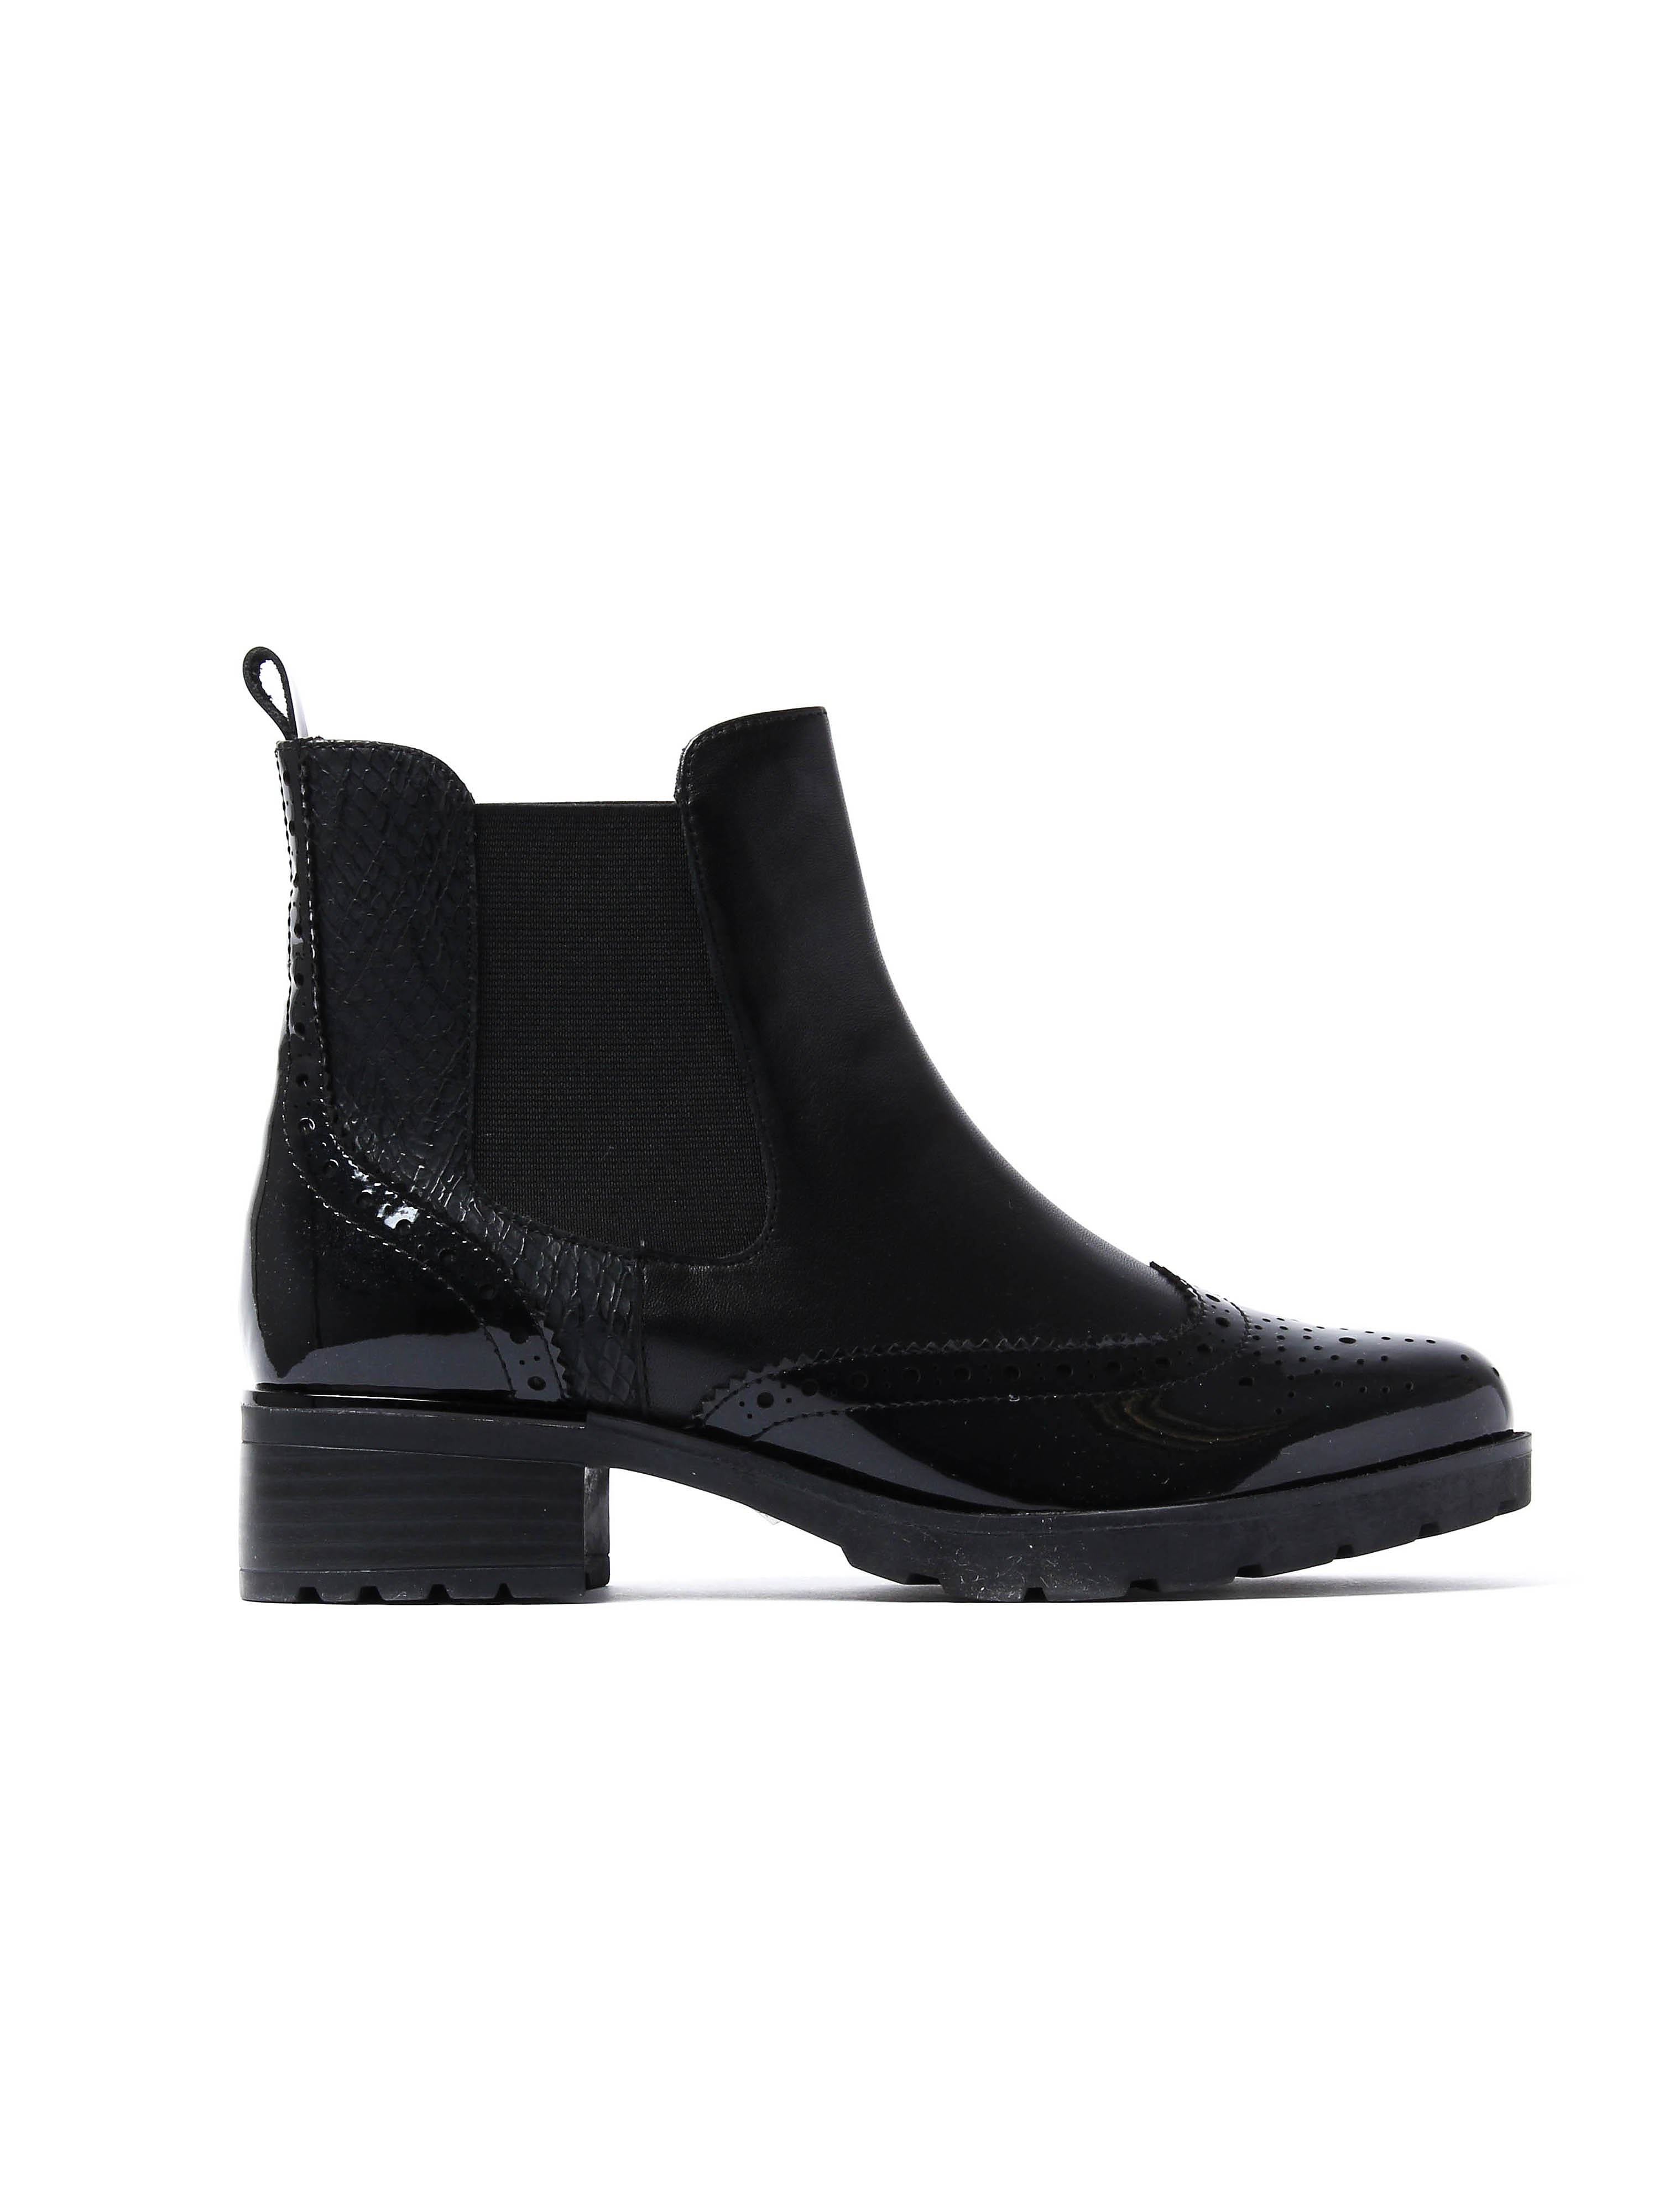 Caprice Women's Brogue Chelsea Ankle Boots - Black Leather